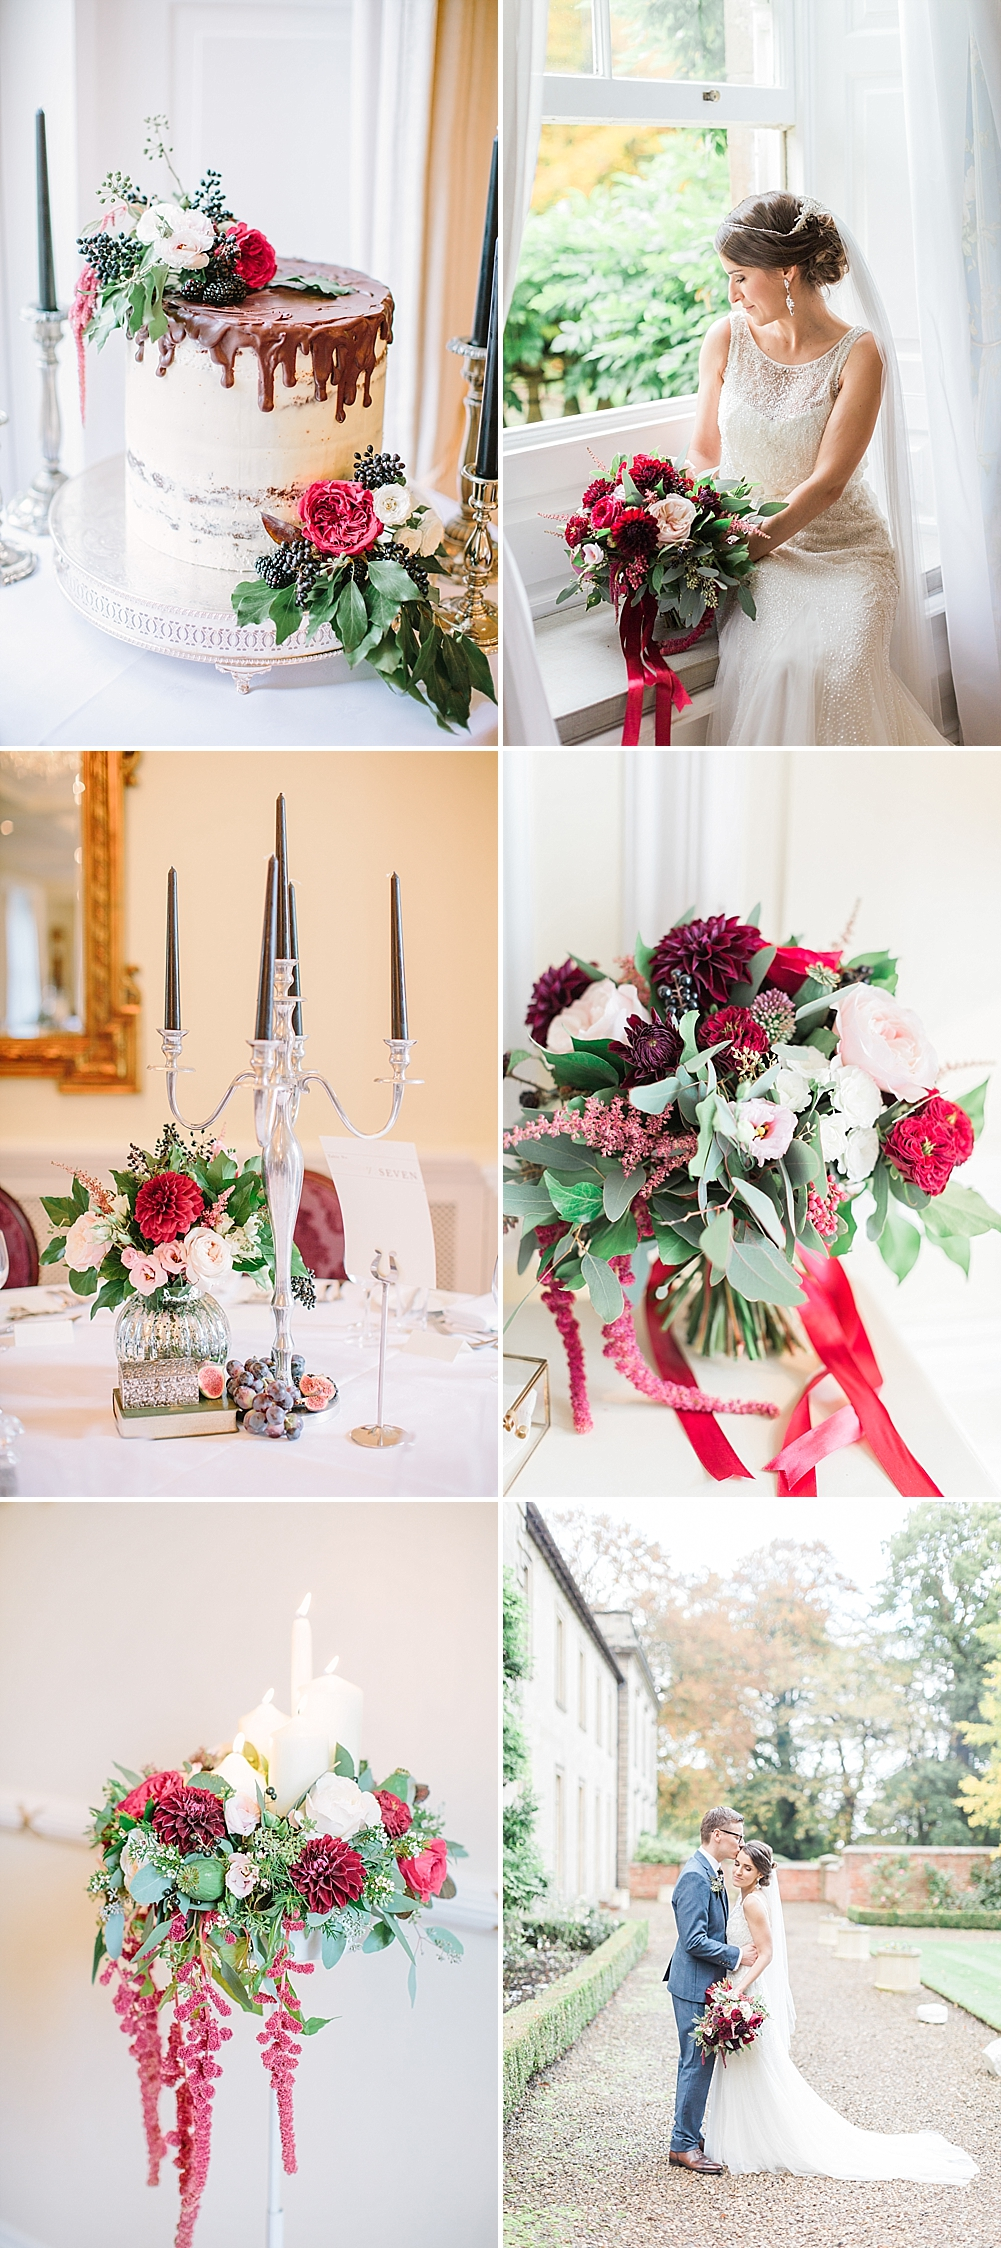 Elegant Wedding at Eshott Hall Northumberland with Red Flowers by Katy Melling Photography